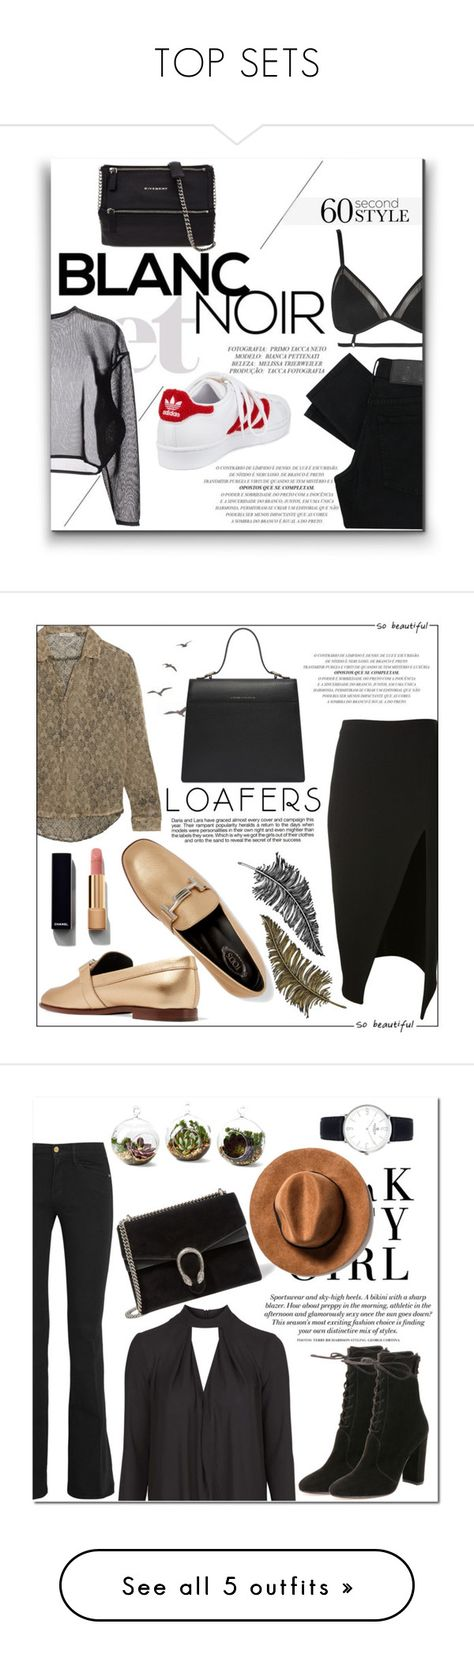 """""""TOP SETS"""" by alinnas ❤ liked on Polyvore featuring Topshop, Cheap Monday, Yves Saint Laurent, adidas, Givenchy, gameday, David Koma, Mes Demoiselles..., Tod's and Industrie"""